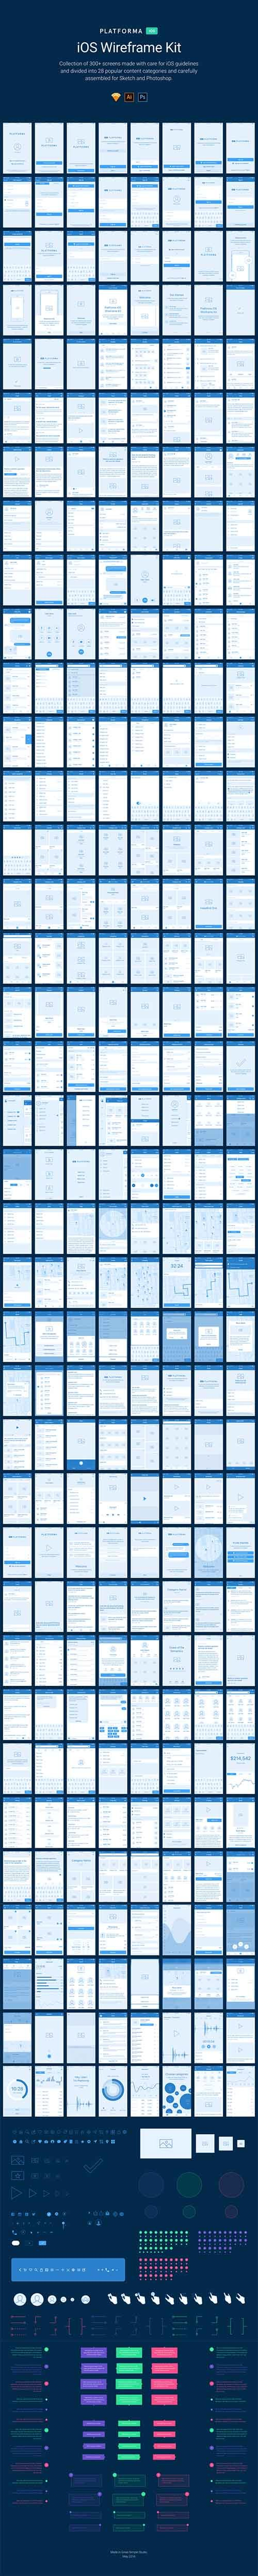 Platforma for iOS - Ultimate wireframe kit for app prototyping